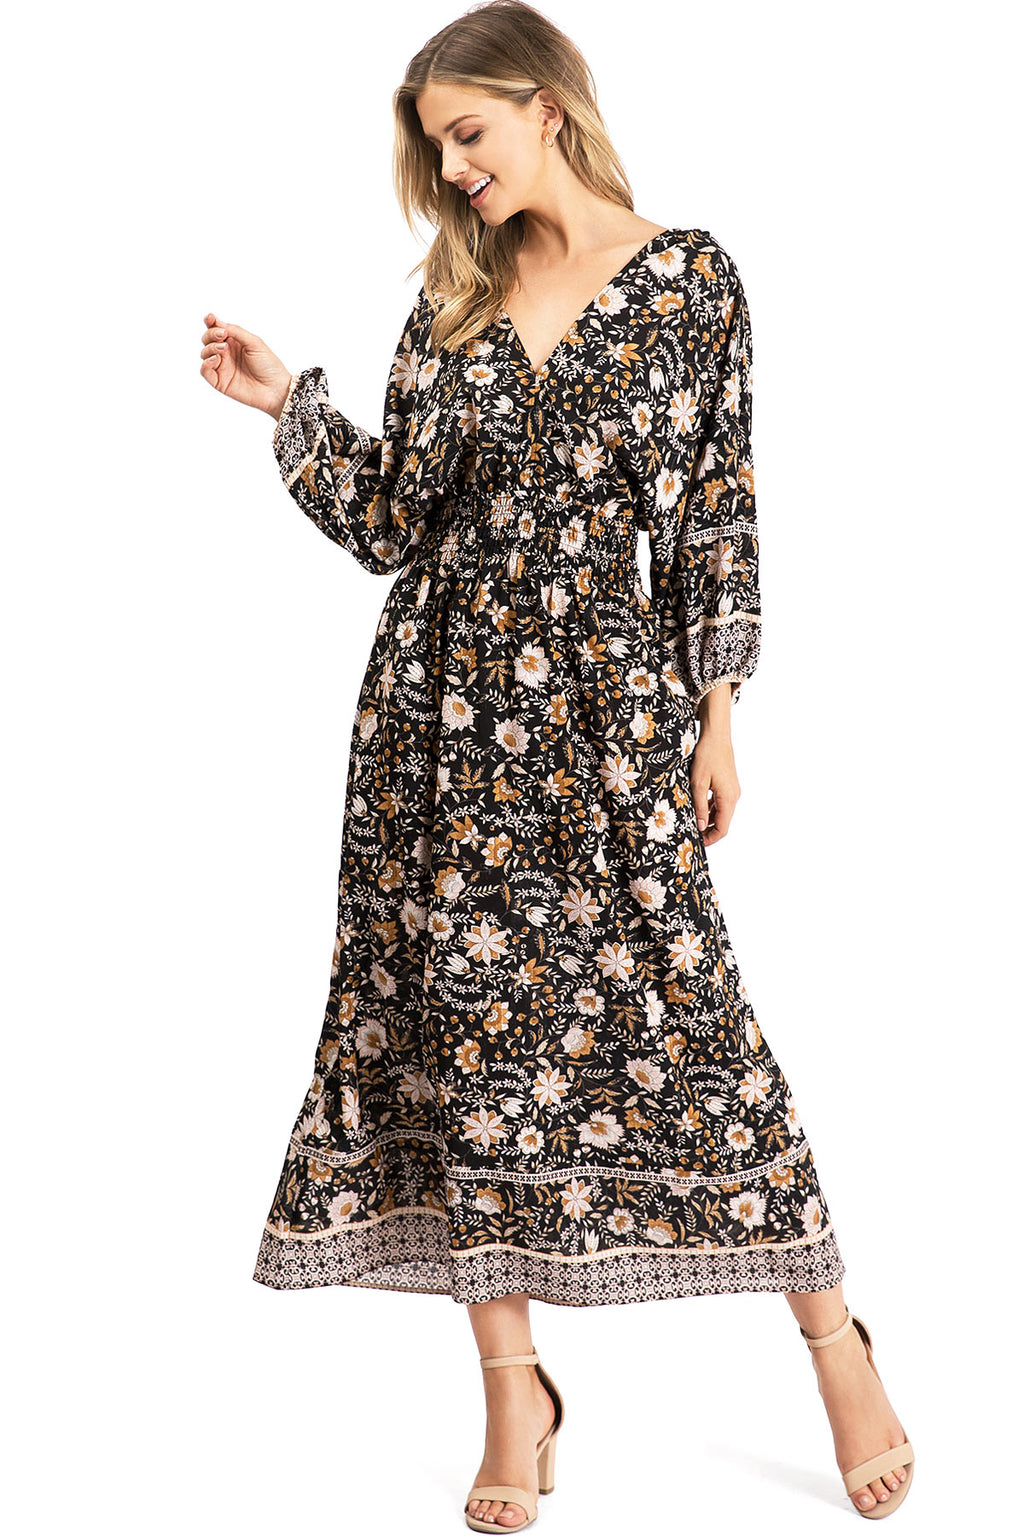 Folklore Midi Dress